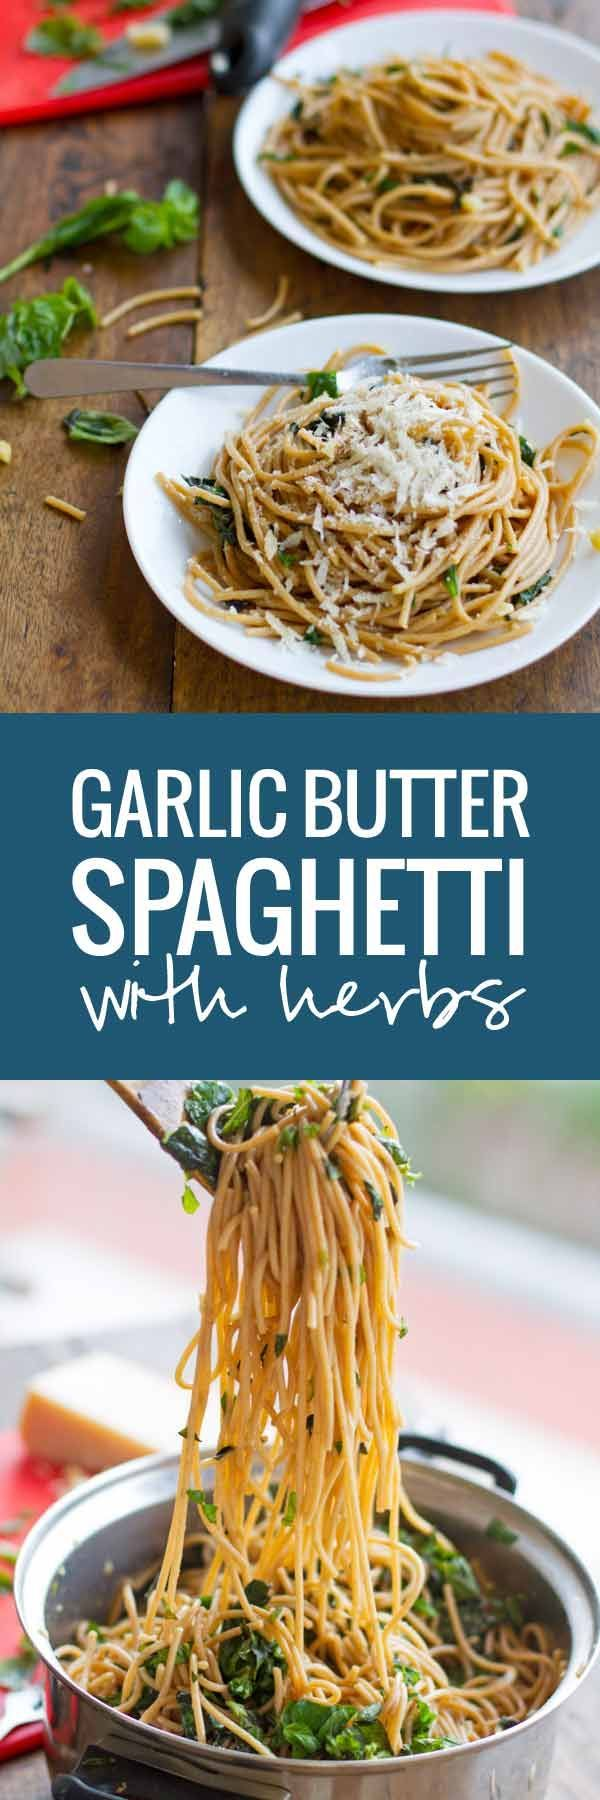 Garlic Butter Spaghetti with Herbs - Spaghetti with a creamy and fresh taste | pinchofyum.com